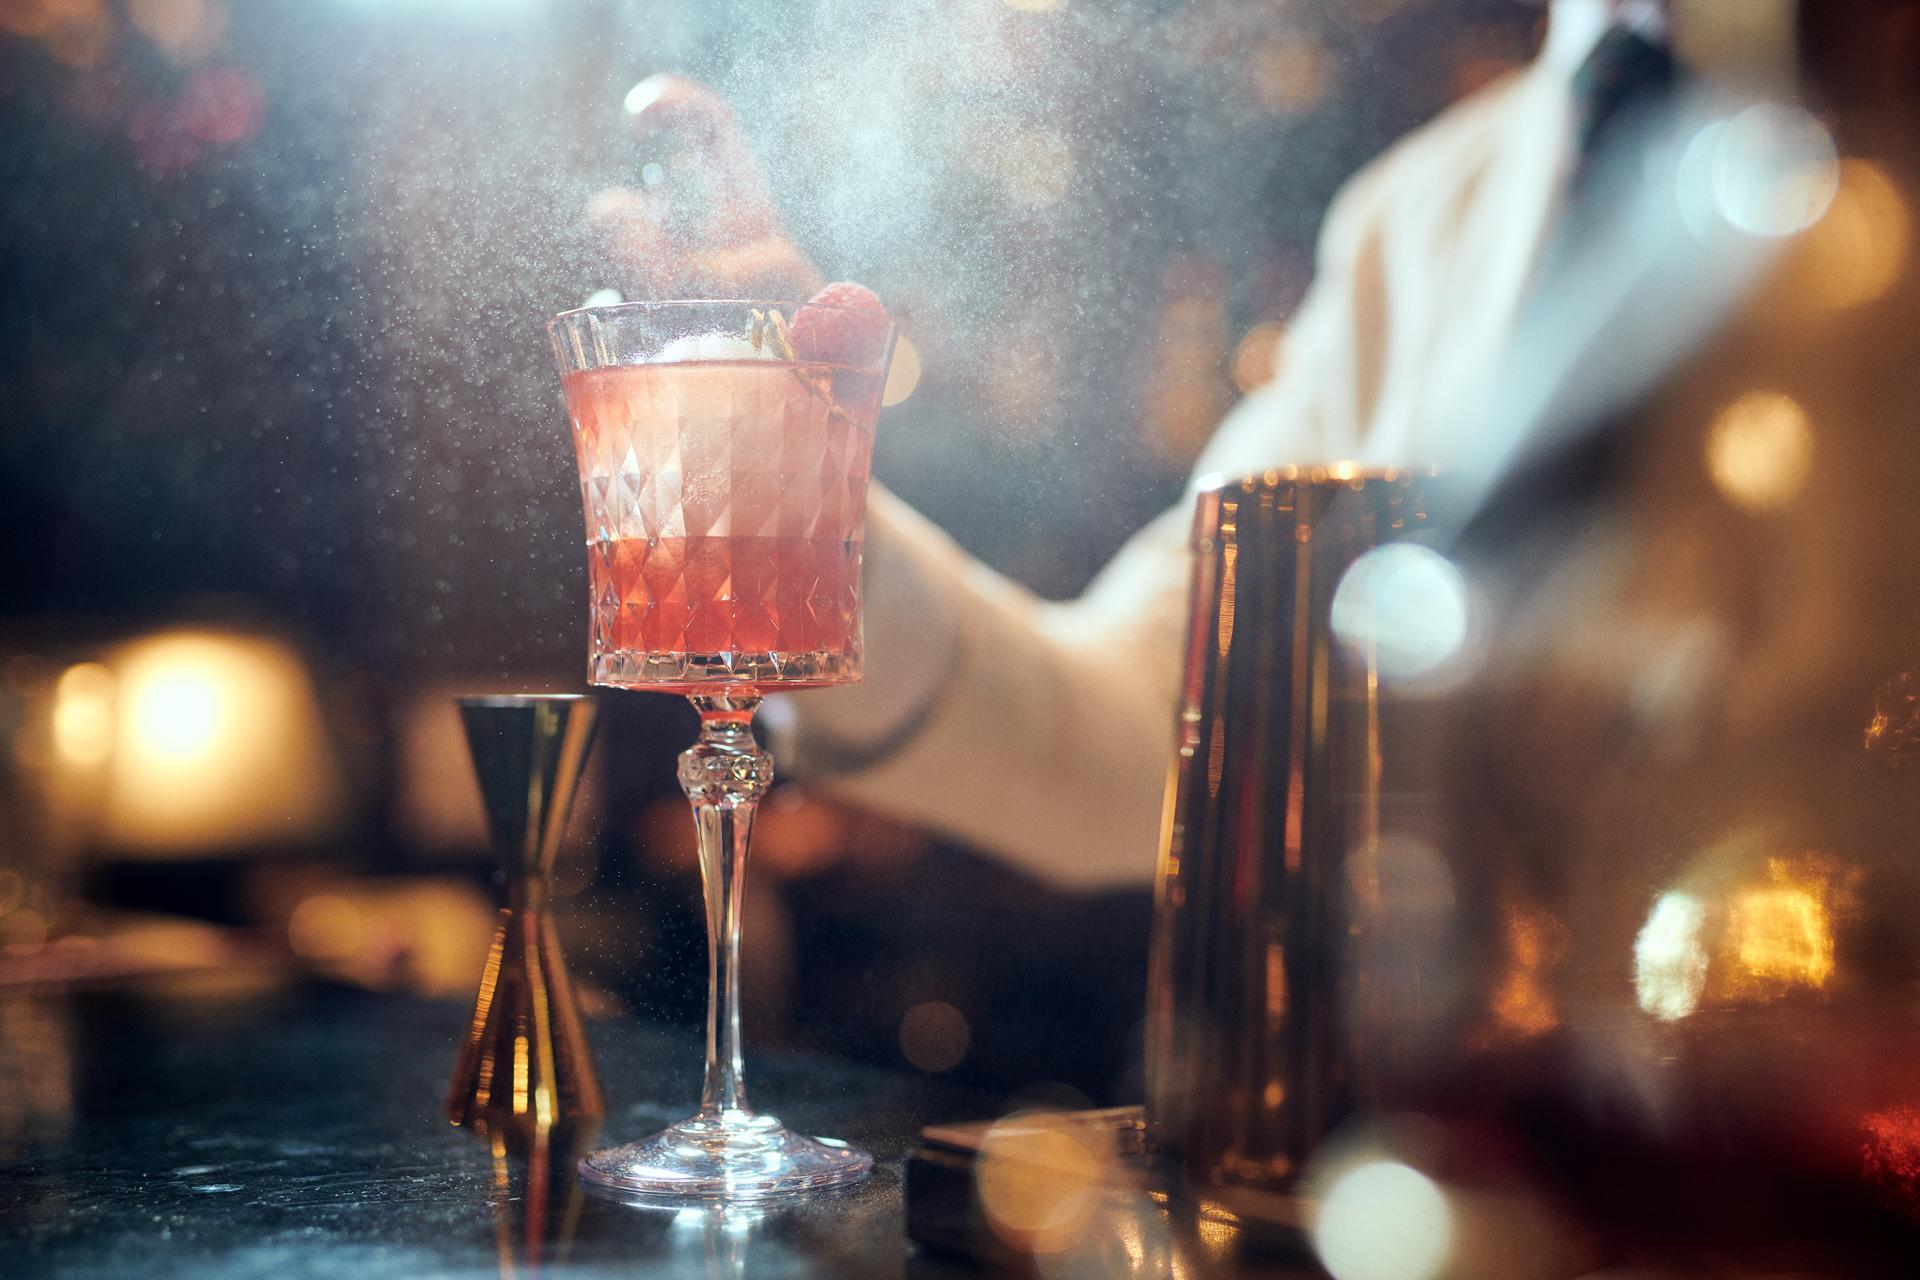 A cocktail masterclass at The Milestone Hotel